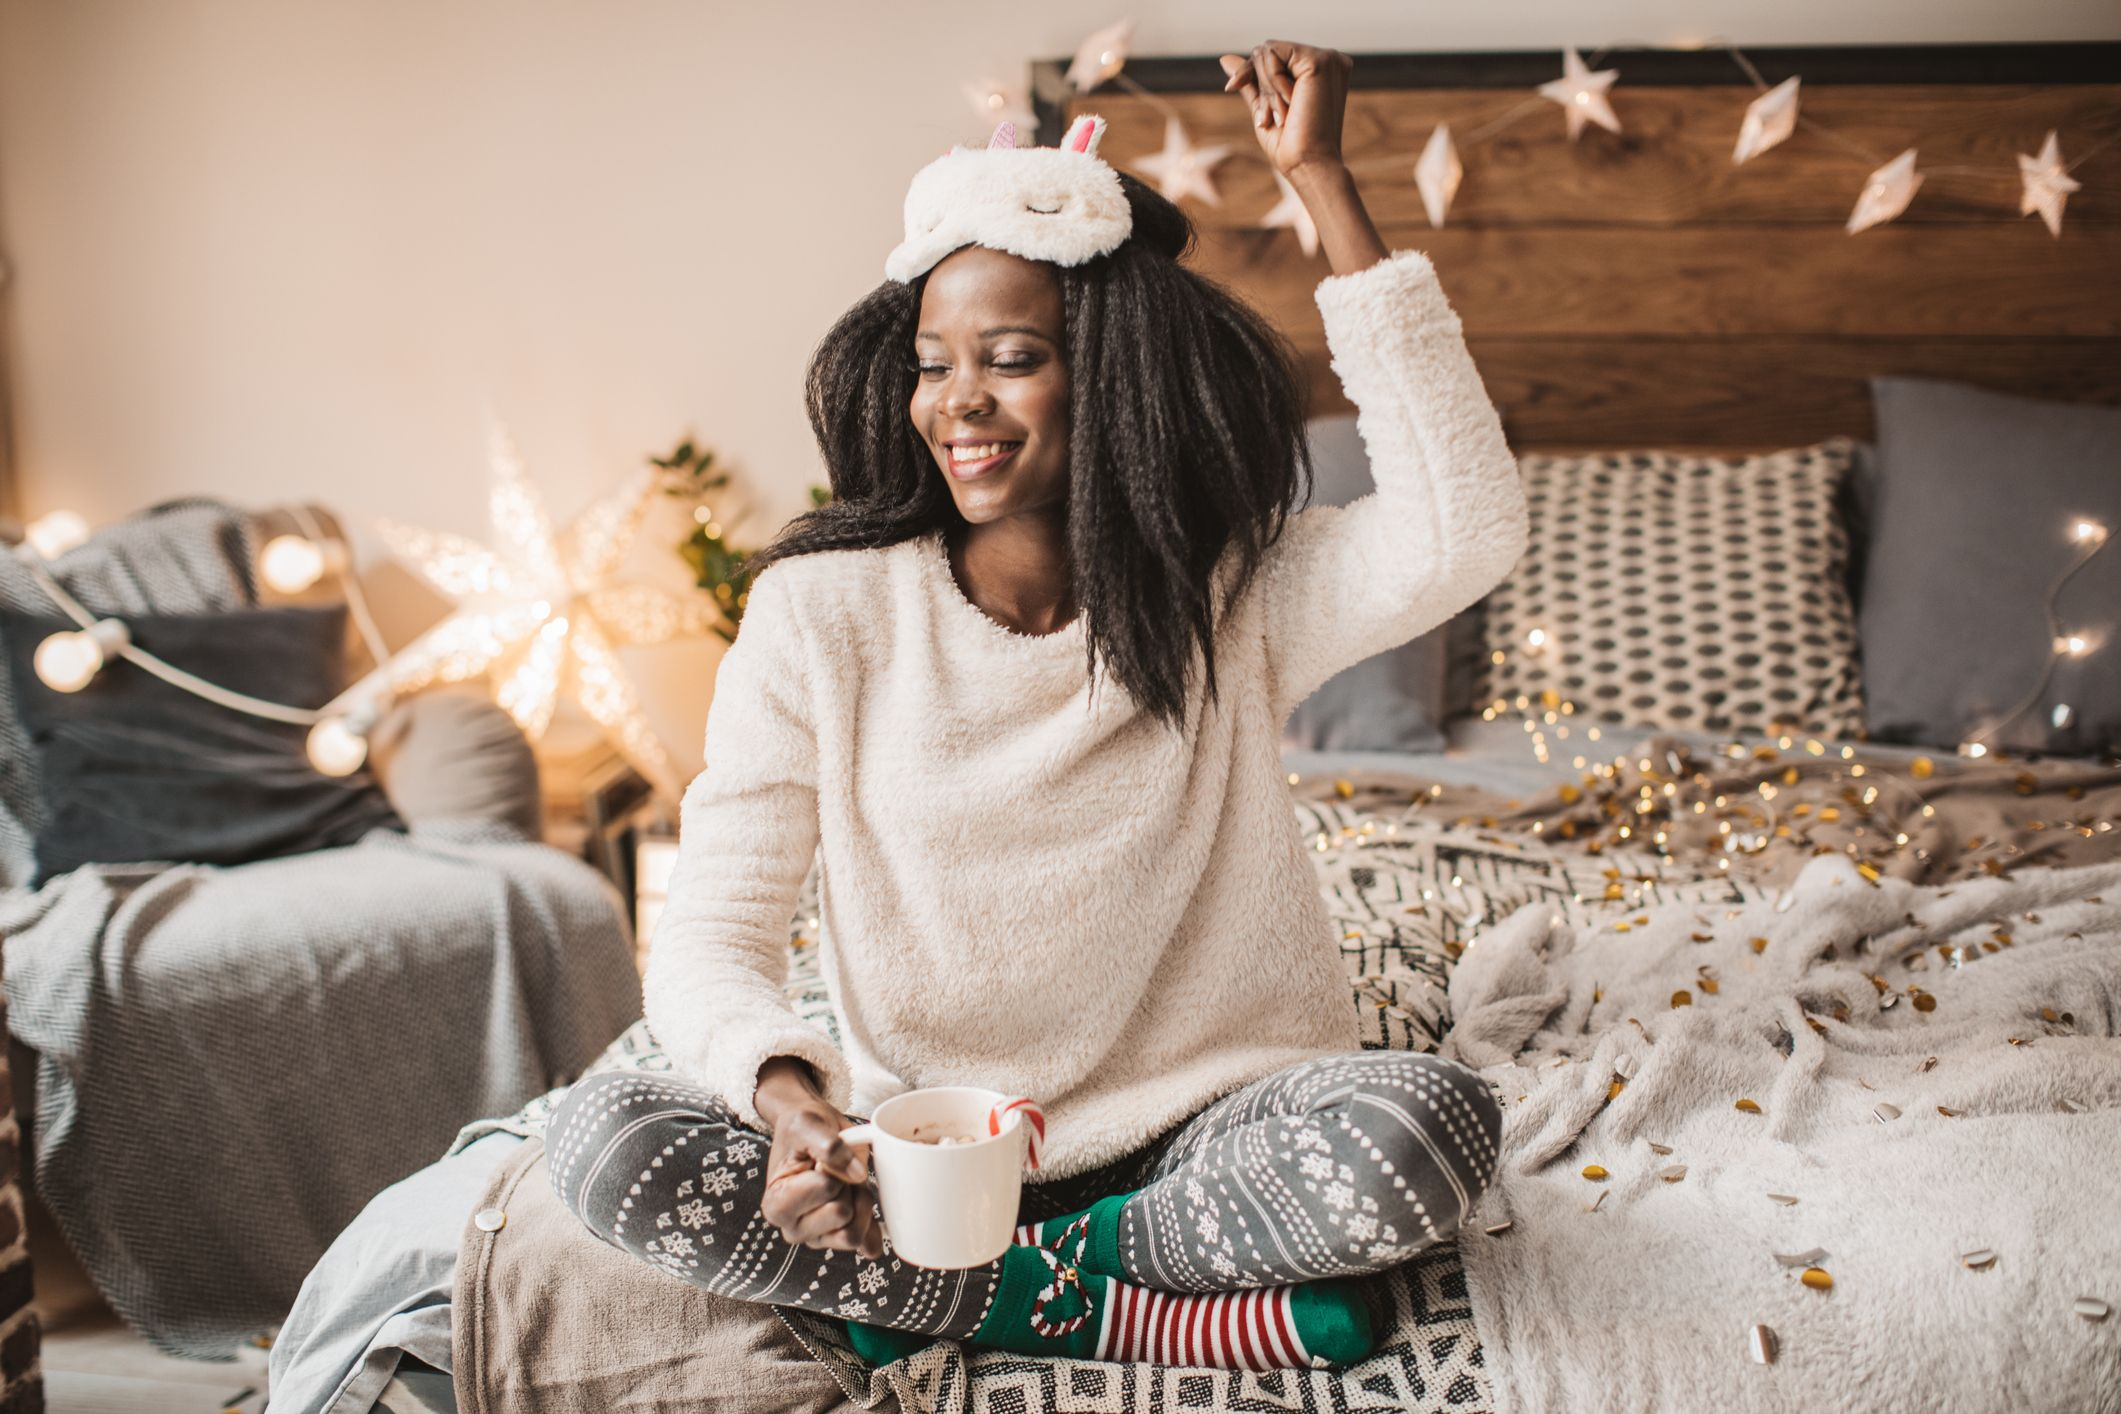 Christmas pyjamas that'll get you in the festive mood